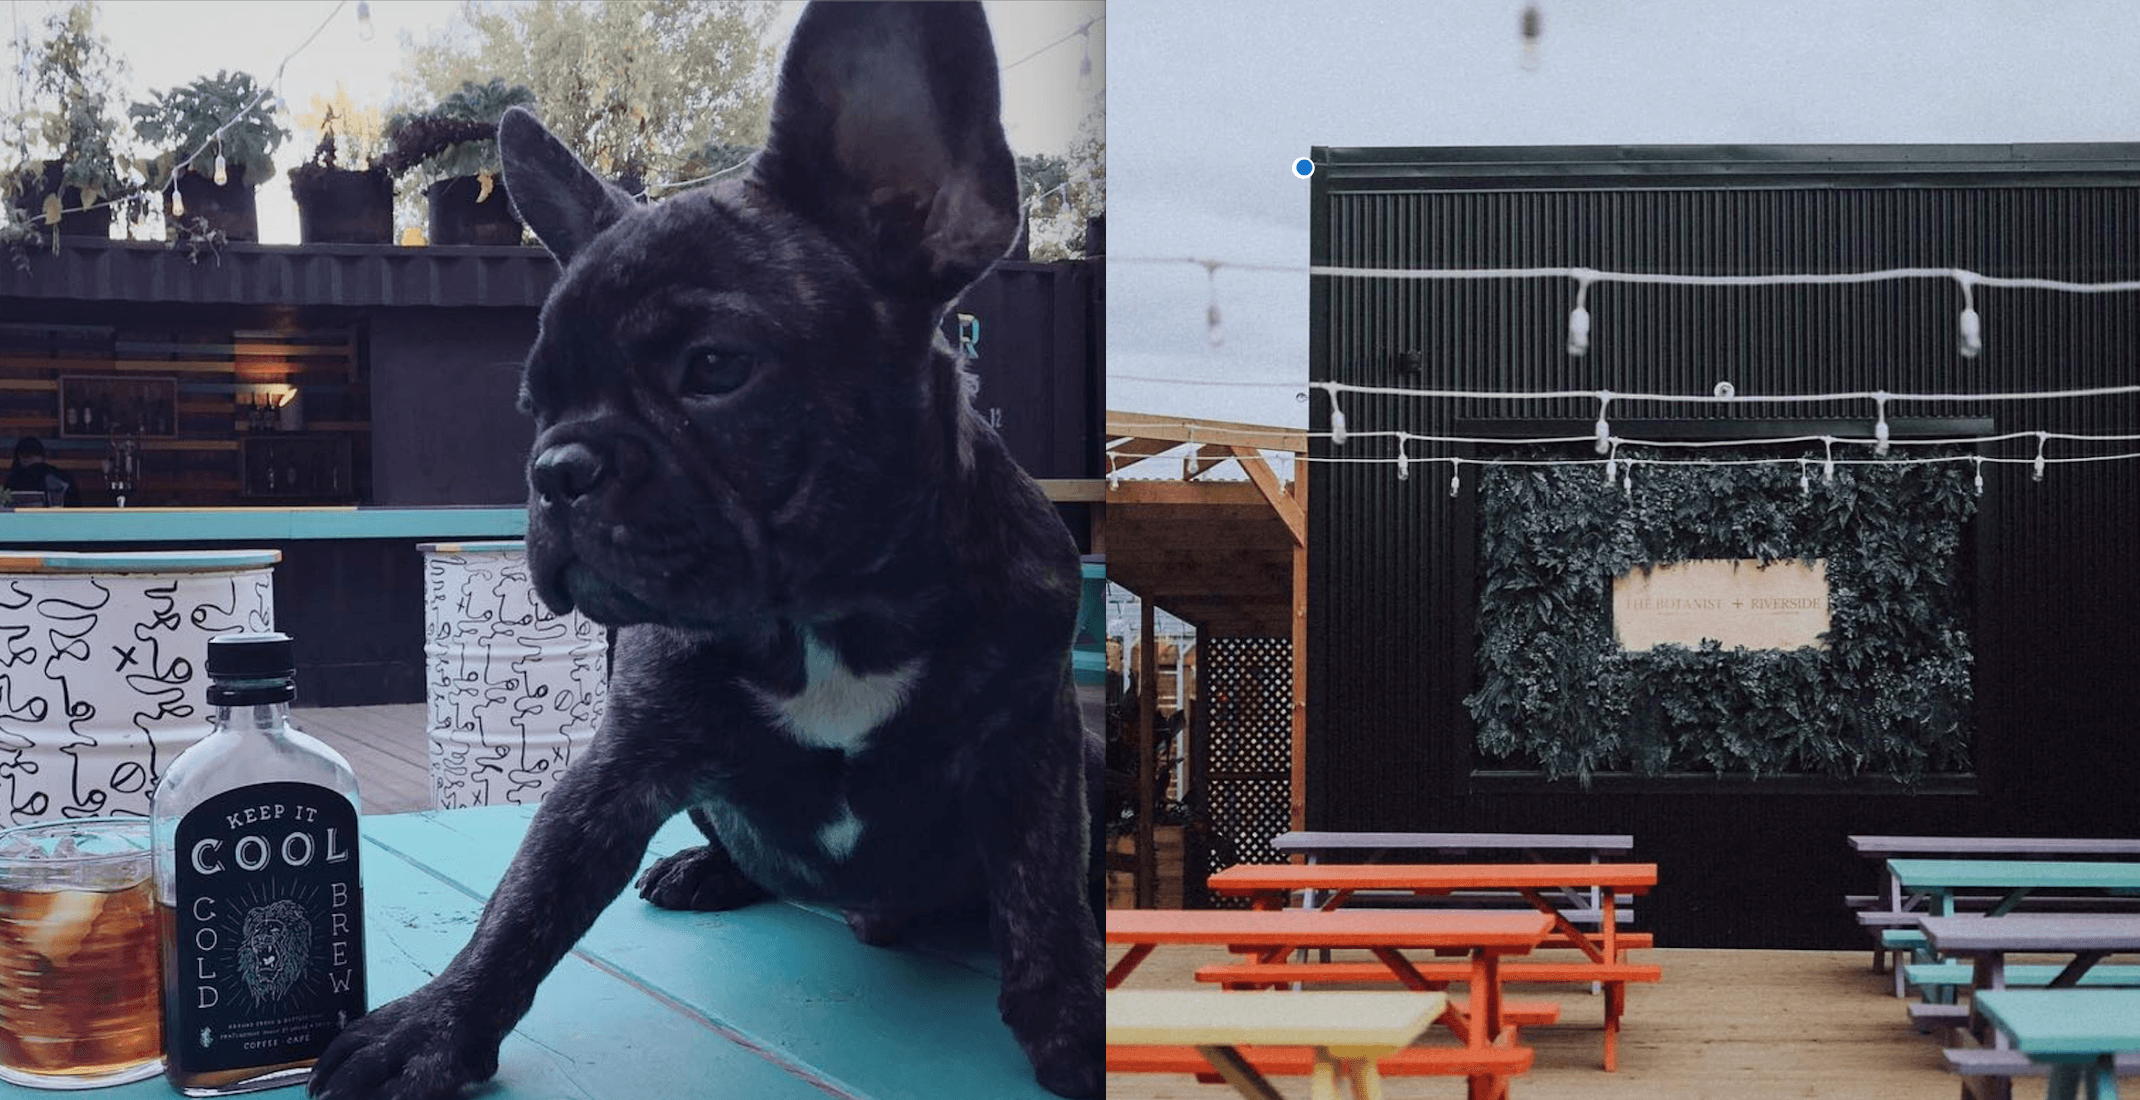 Grab a drink with your dog at this Montreal bar's summer 'Yappy Hour'